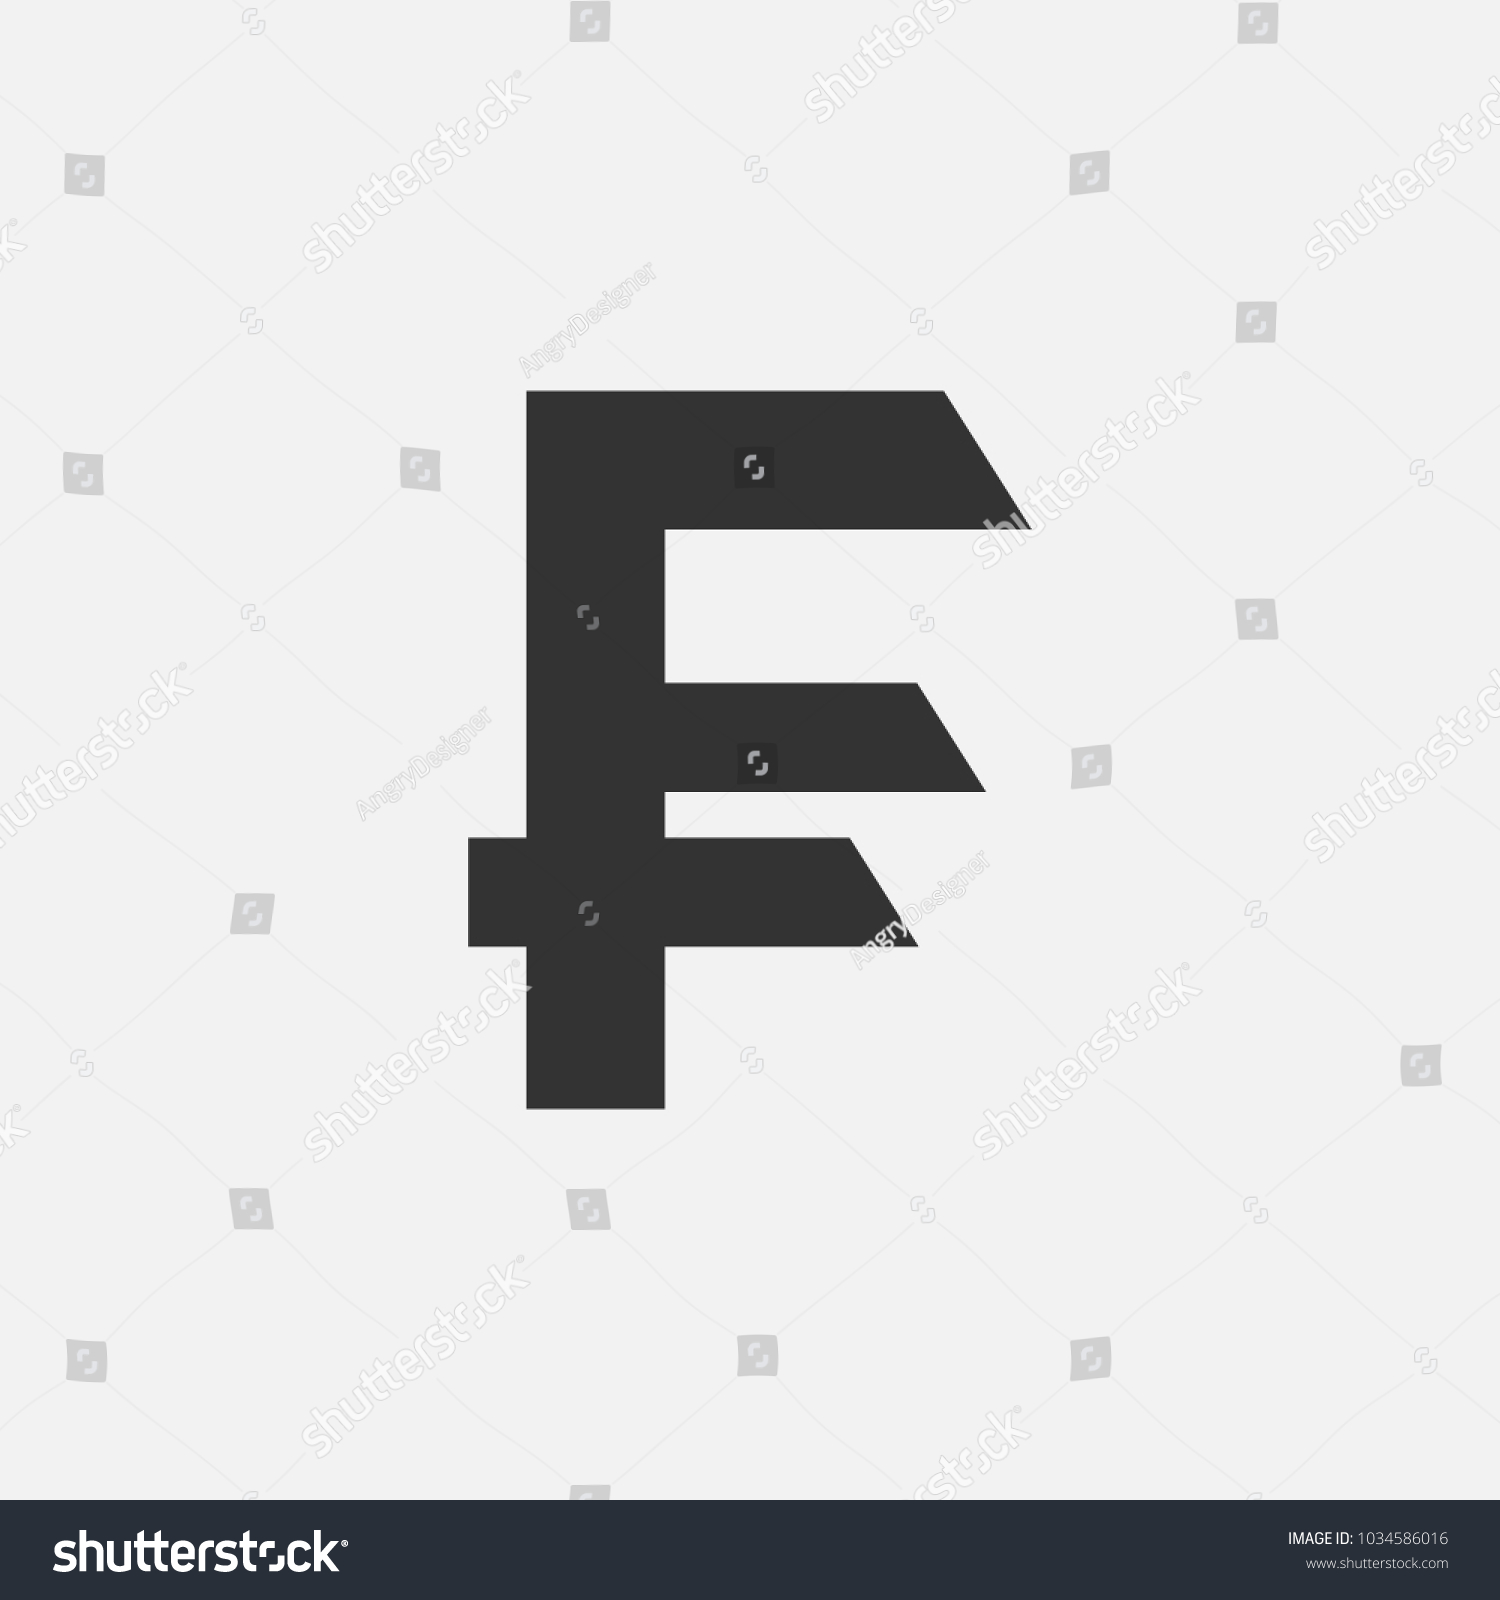 Currency Symbol French Franc Vector Illustration Stock Vector